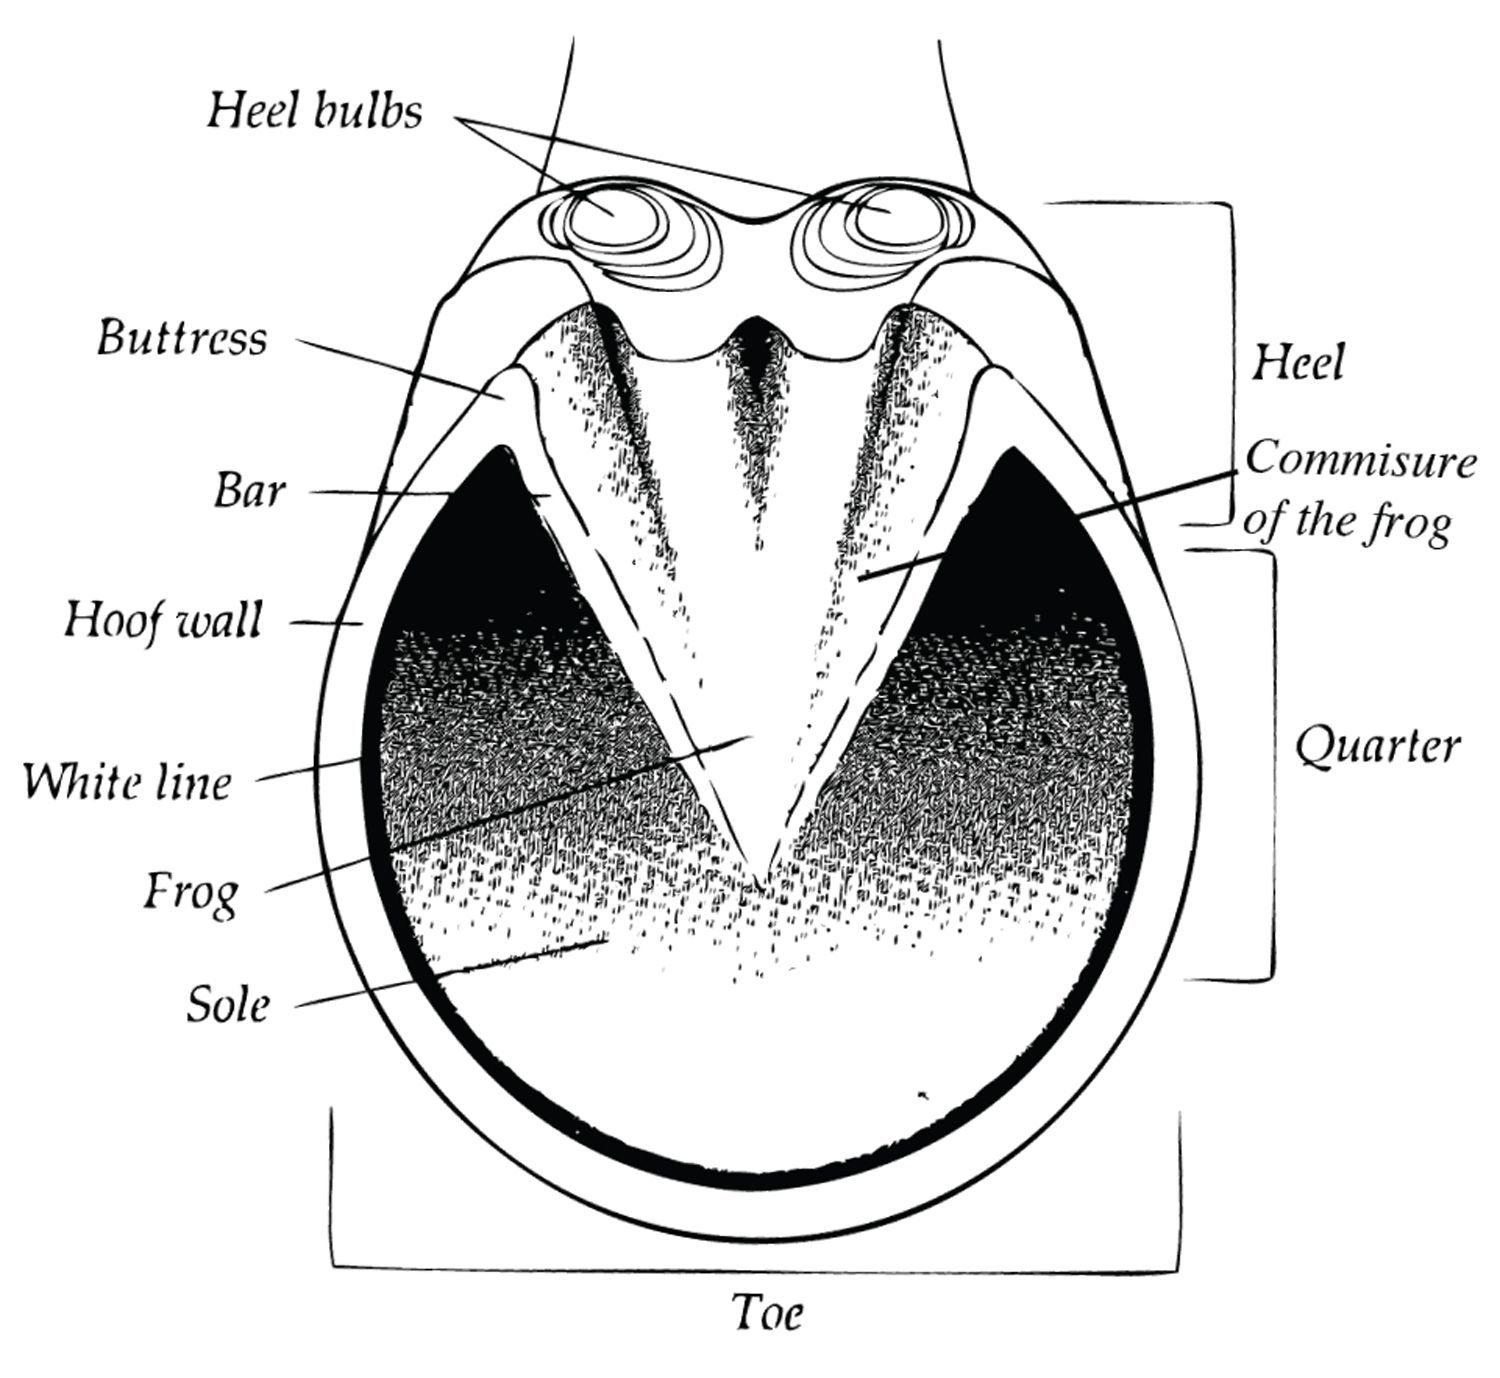 parts of a blank horse diagram cell cycle simple the equine hoof showing heel